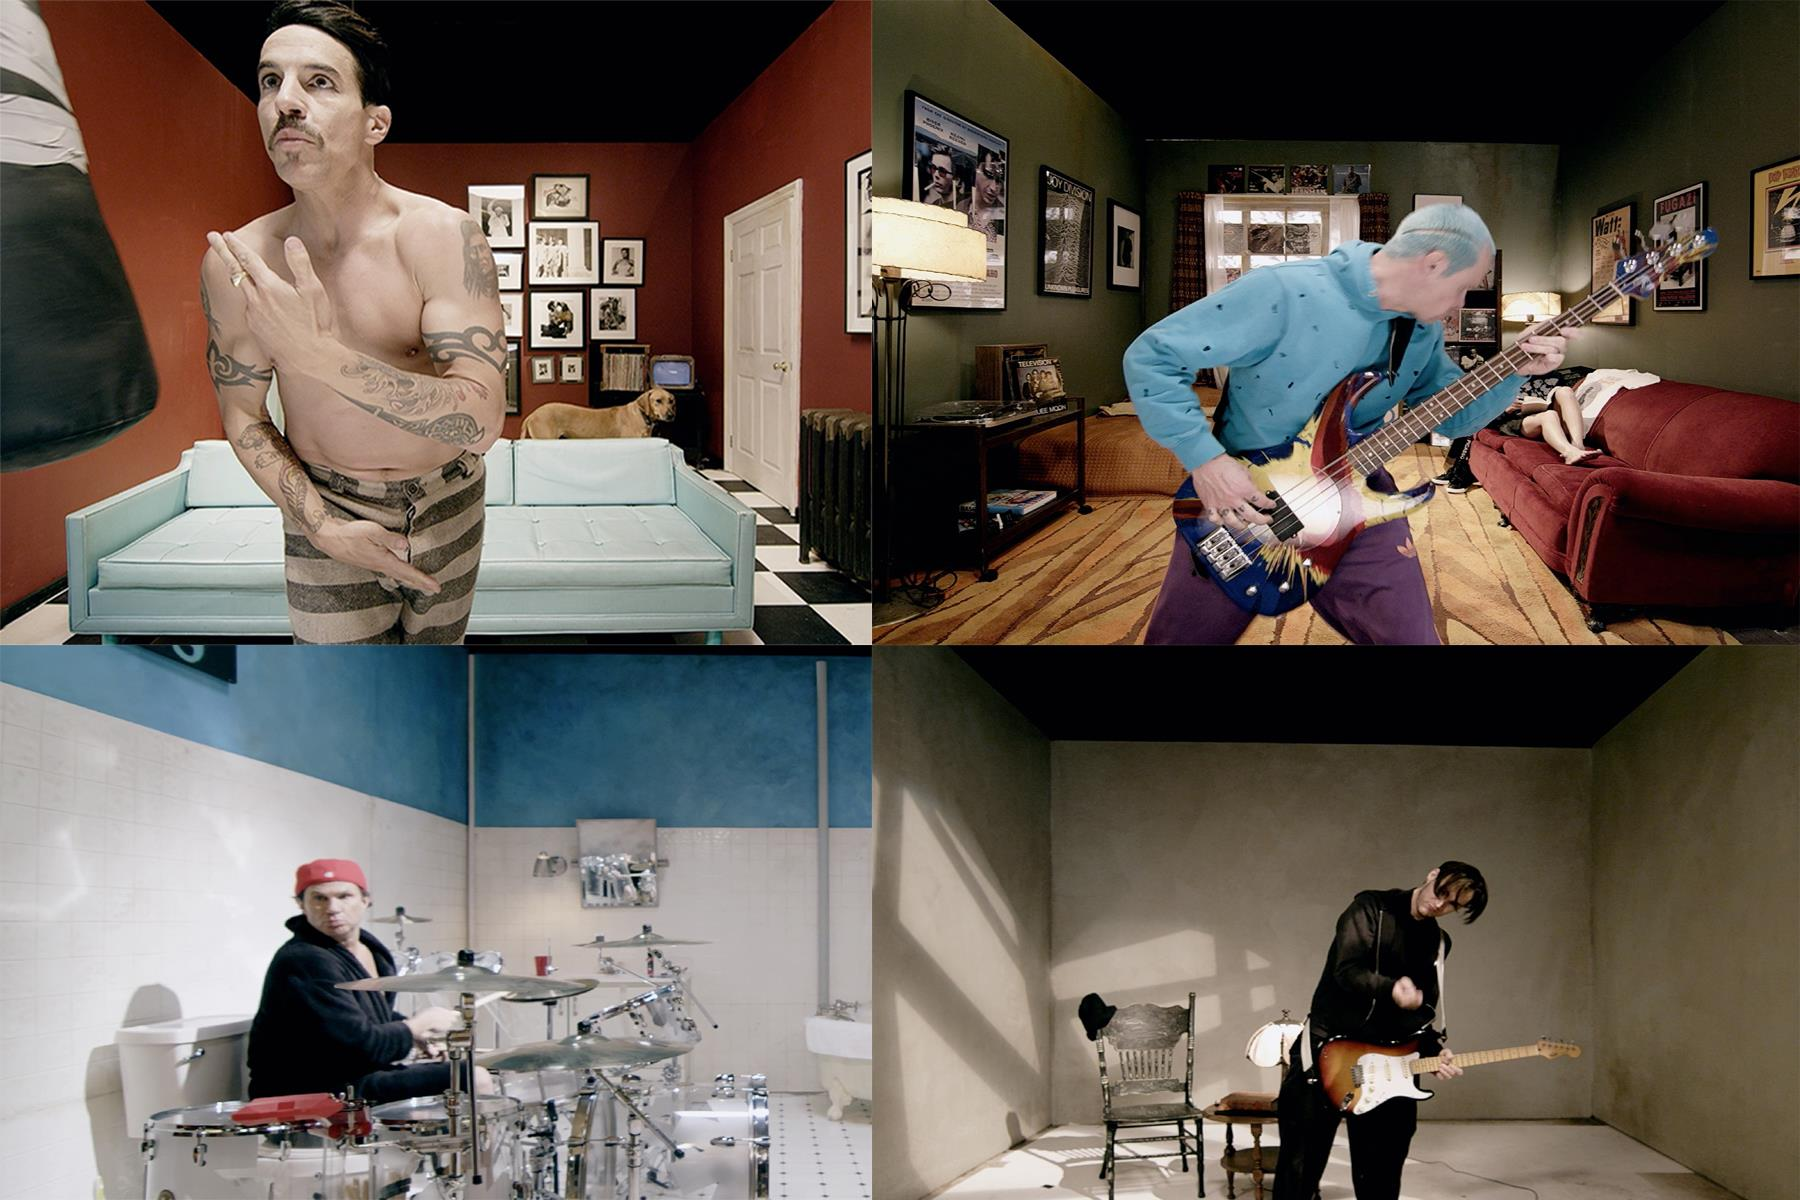 Red Hot Chili Peppers. Photo from Facebook.